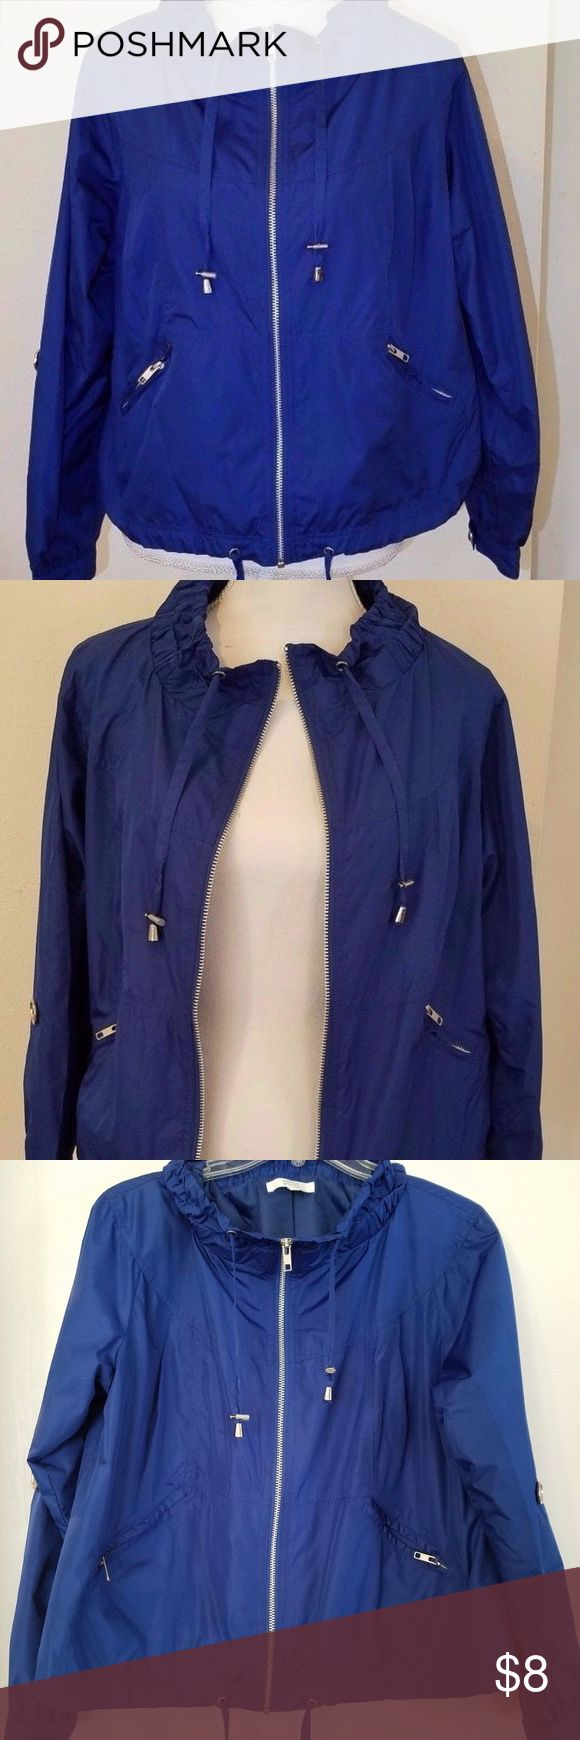 "Marks and spencer blue wind coat jacket size 8 Marks and Spencer size UK 10 (Medium) light weight blue jacket with zip up front with cowl neck.  Has a full lining. UK size 10=US size 8 2 zip up pockets on outside drawstrings on collar and bottom of jacket pre-owned good condition with a few barely noticable light spots on back (see pictures) arm (from top shoulder seem to cuff): 23"" Length (from front collar seem to bottom): 19"" Bust (underneath armpit): 21.25"" Marks & Spencer Jackets…"